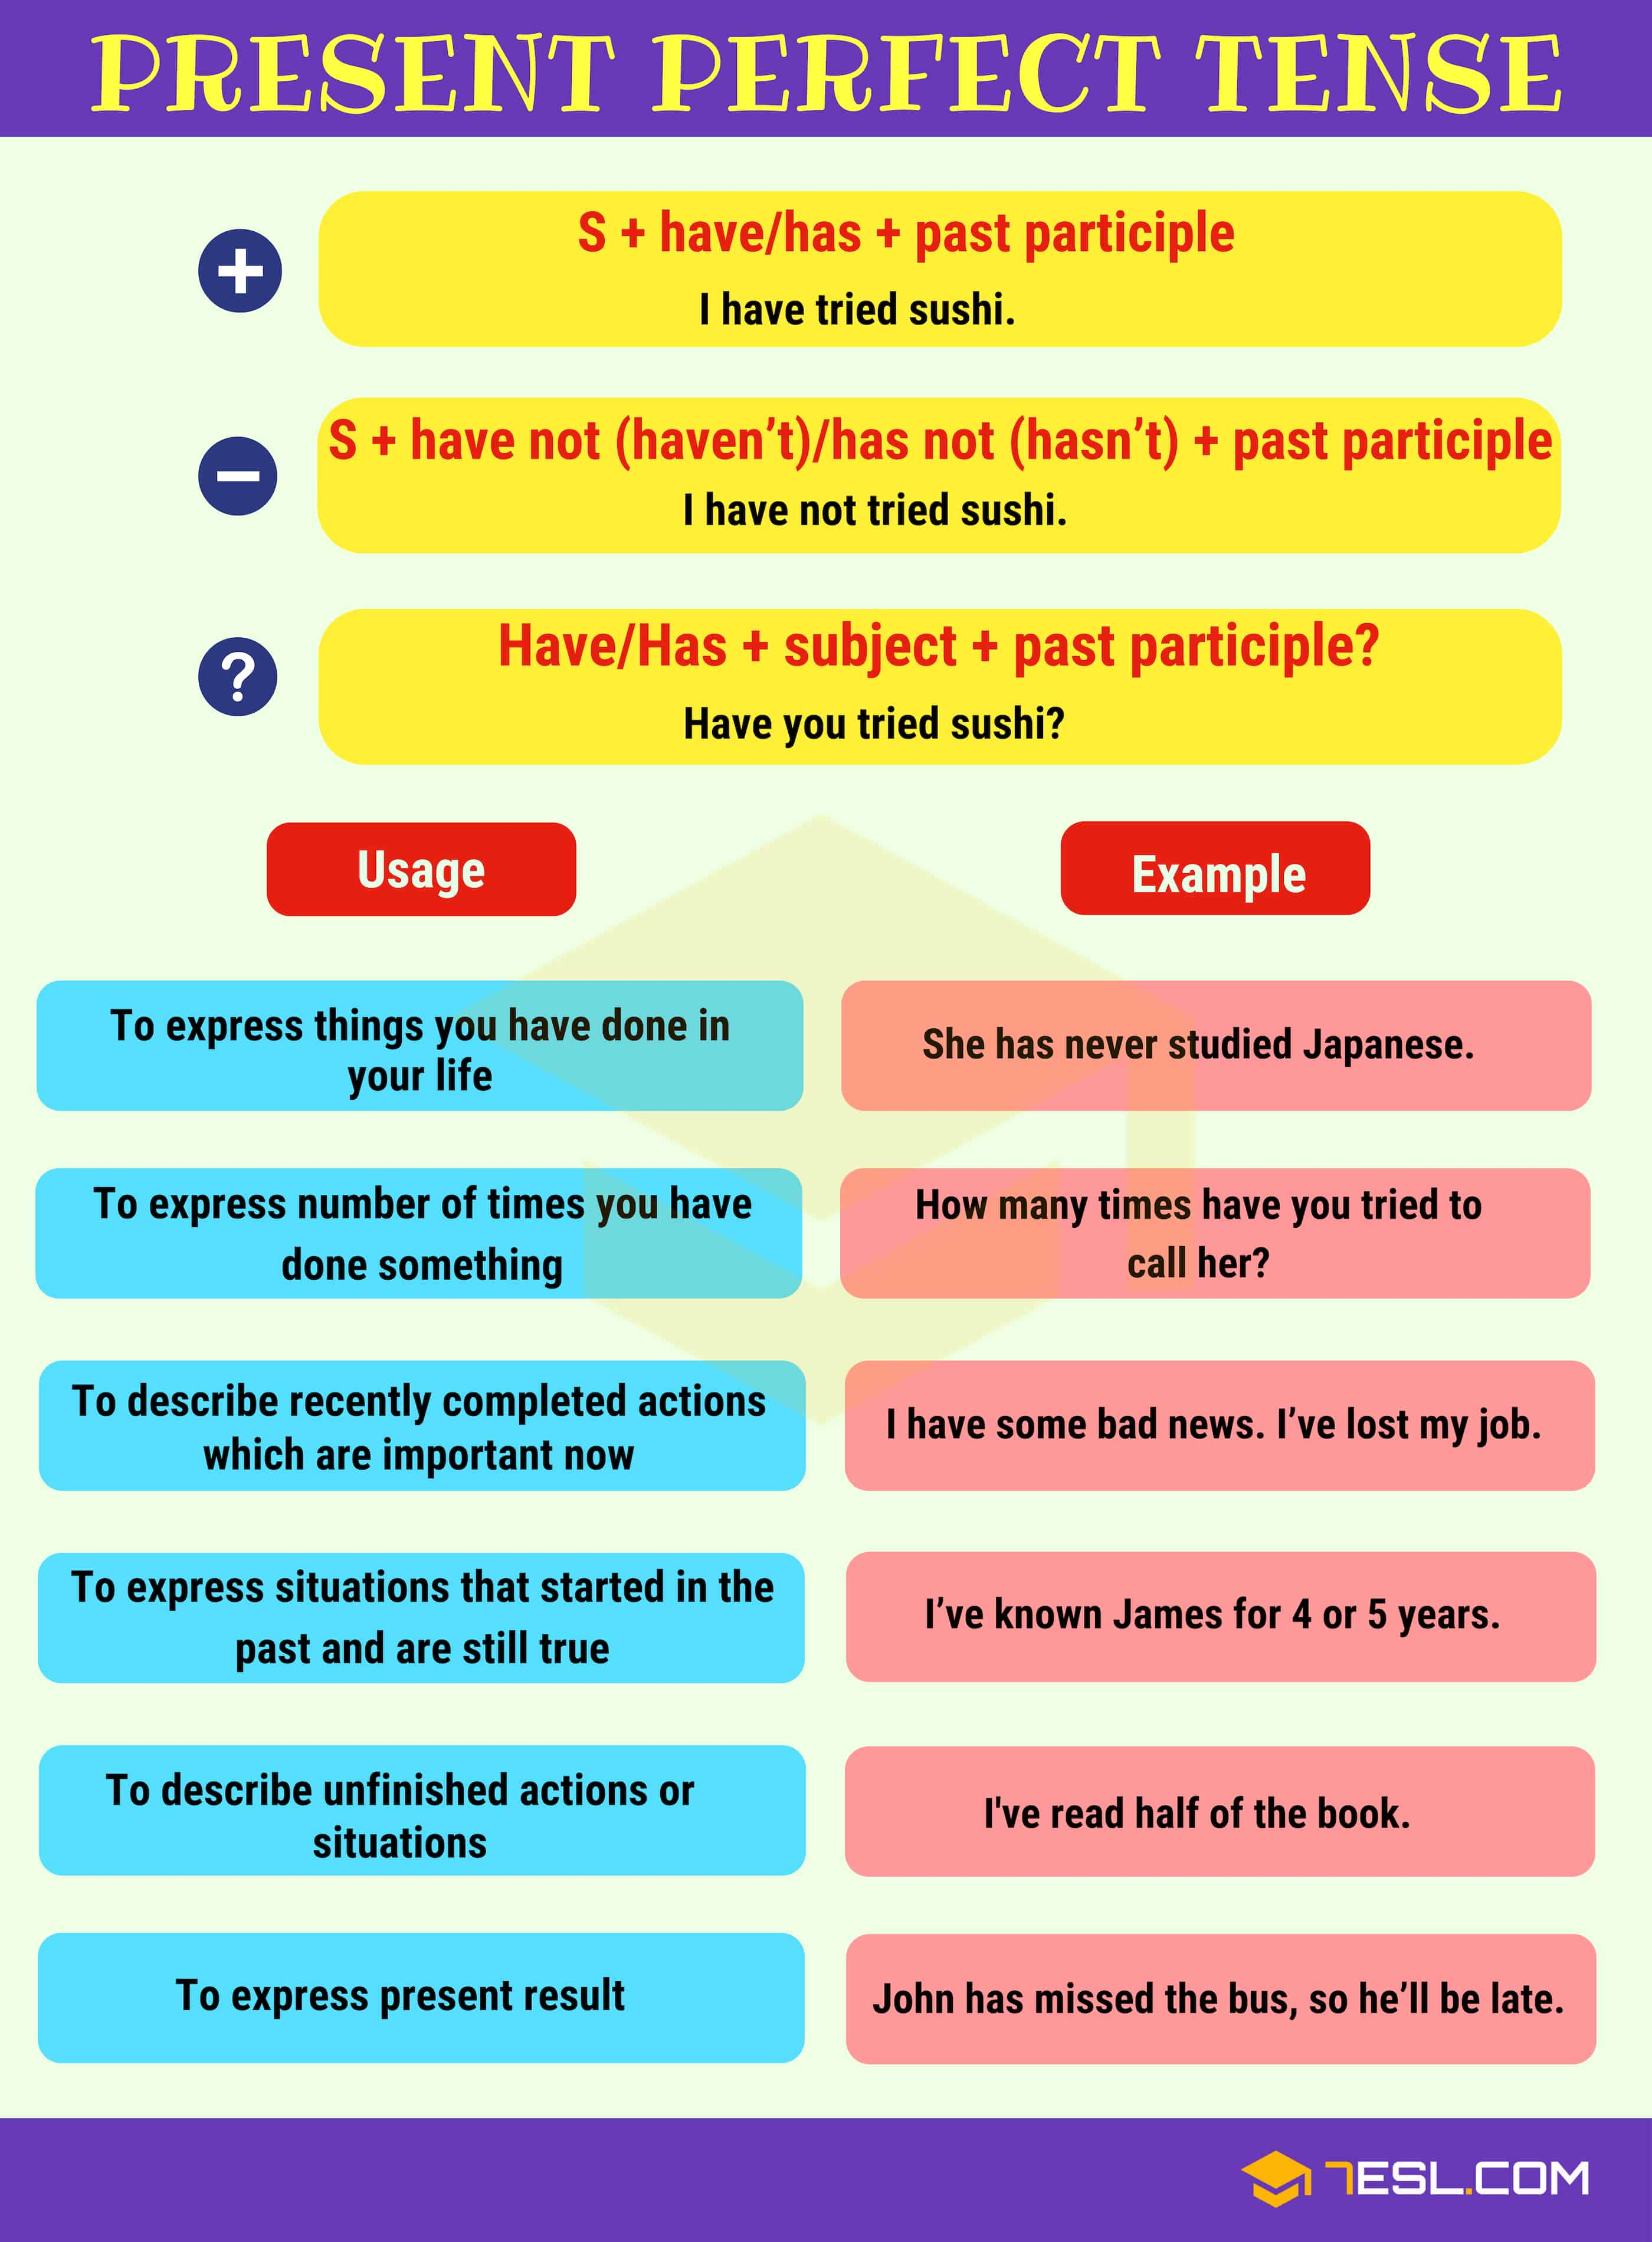 Present perfect | LearnEnglish - British Council